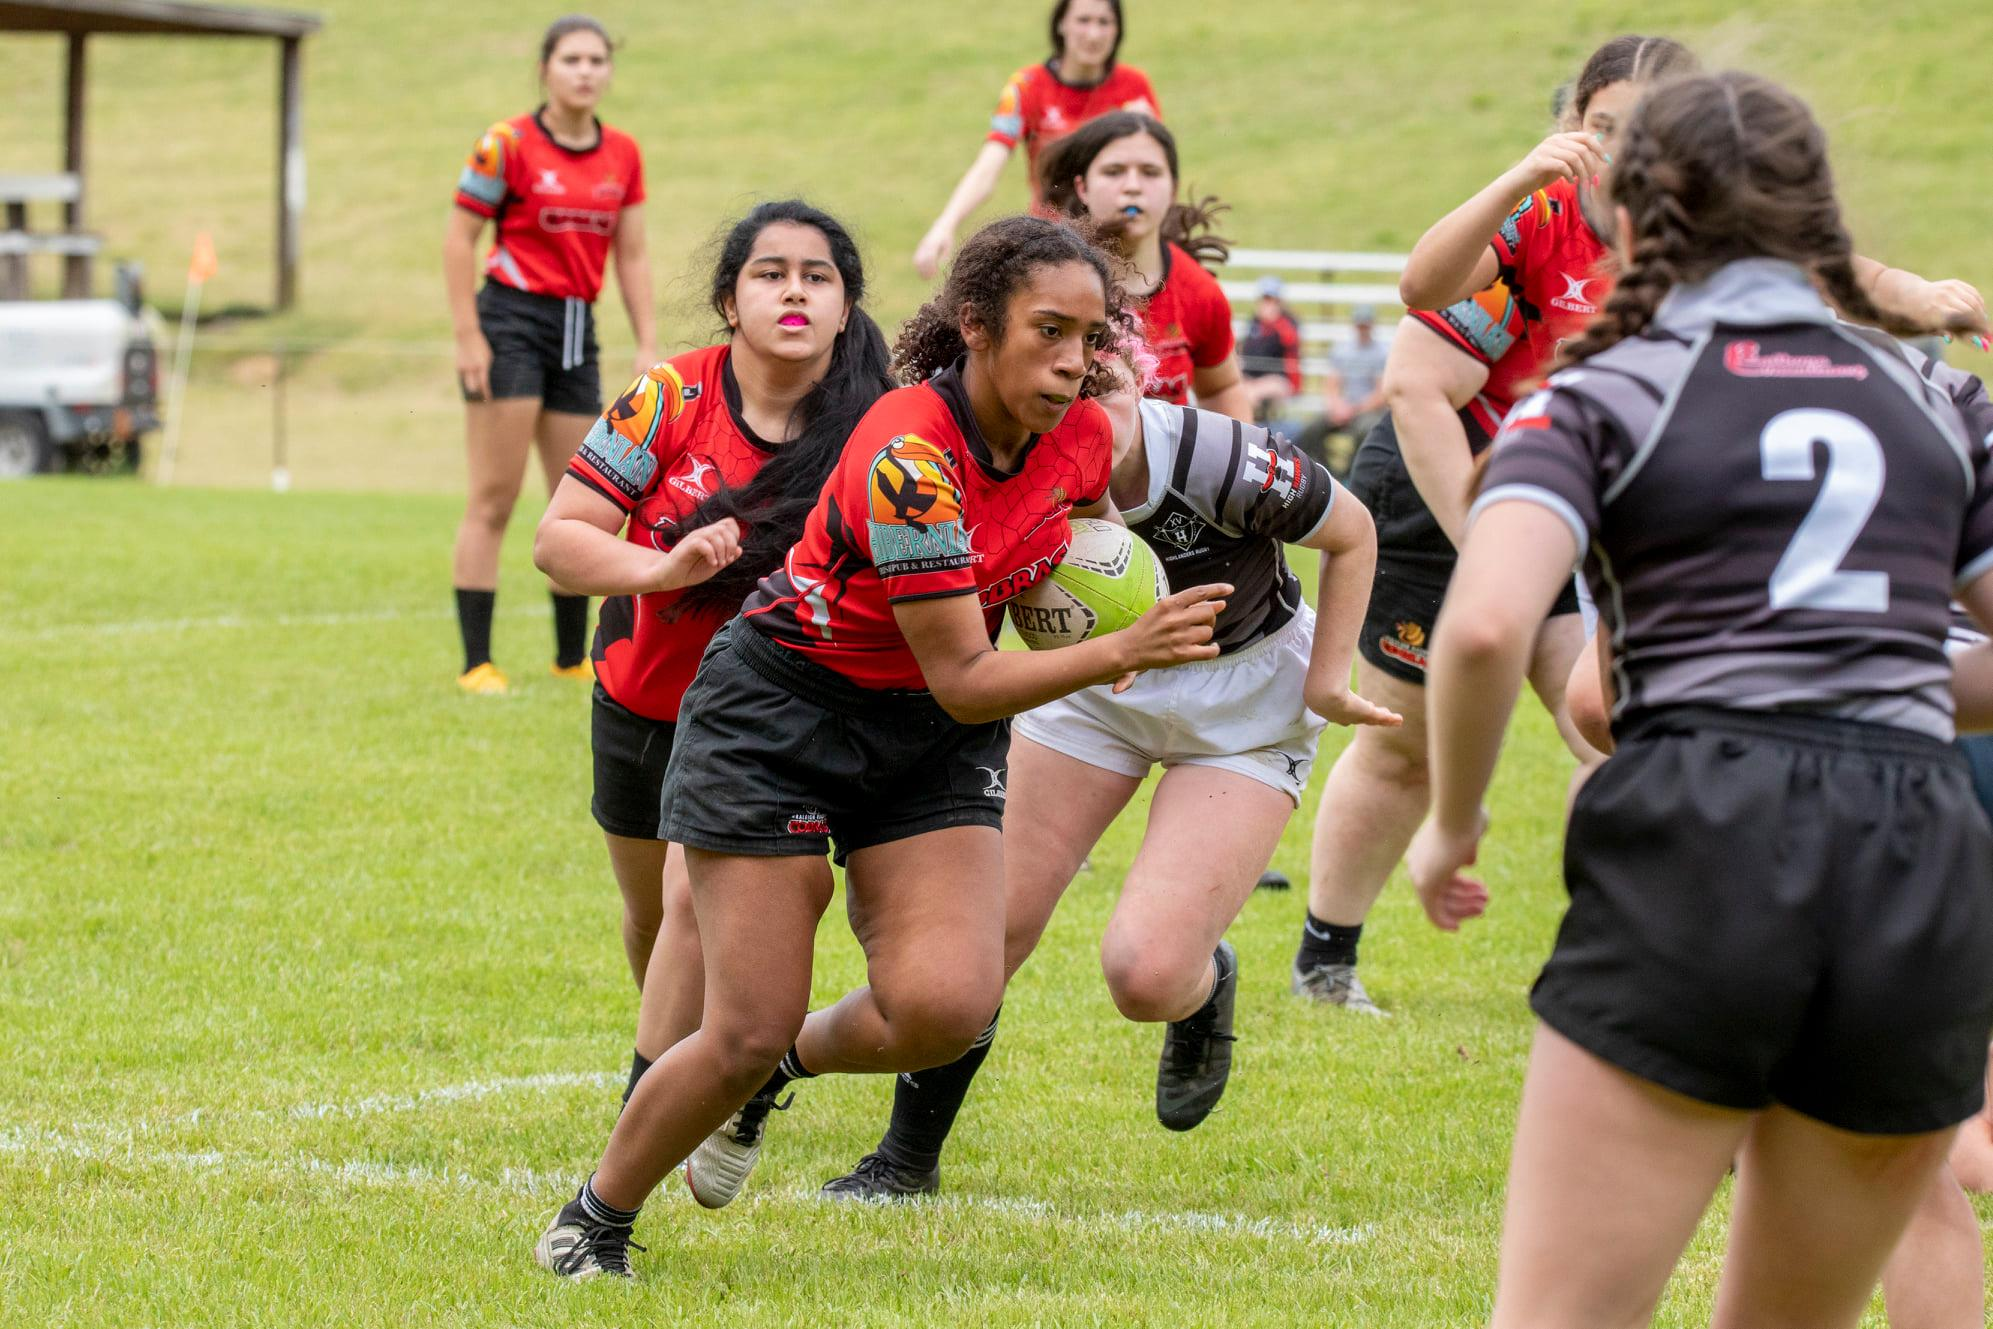 High School Girl Rugby with Ball